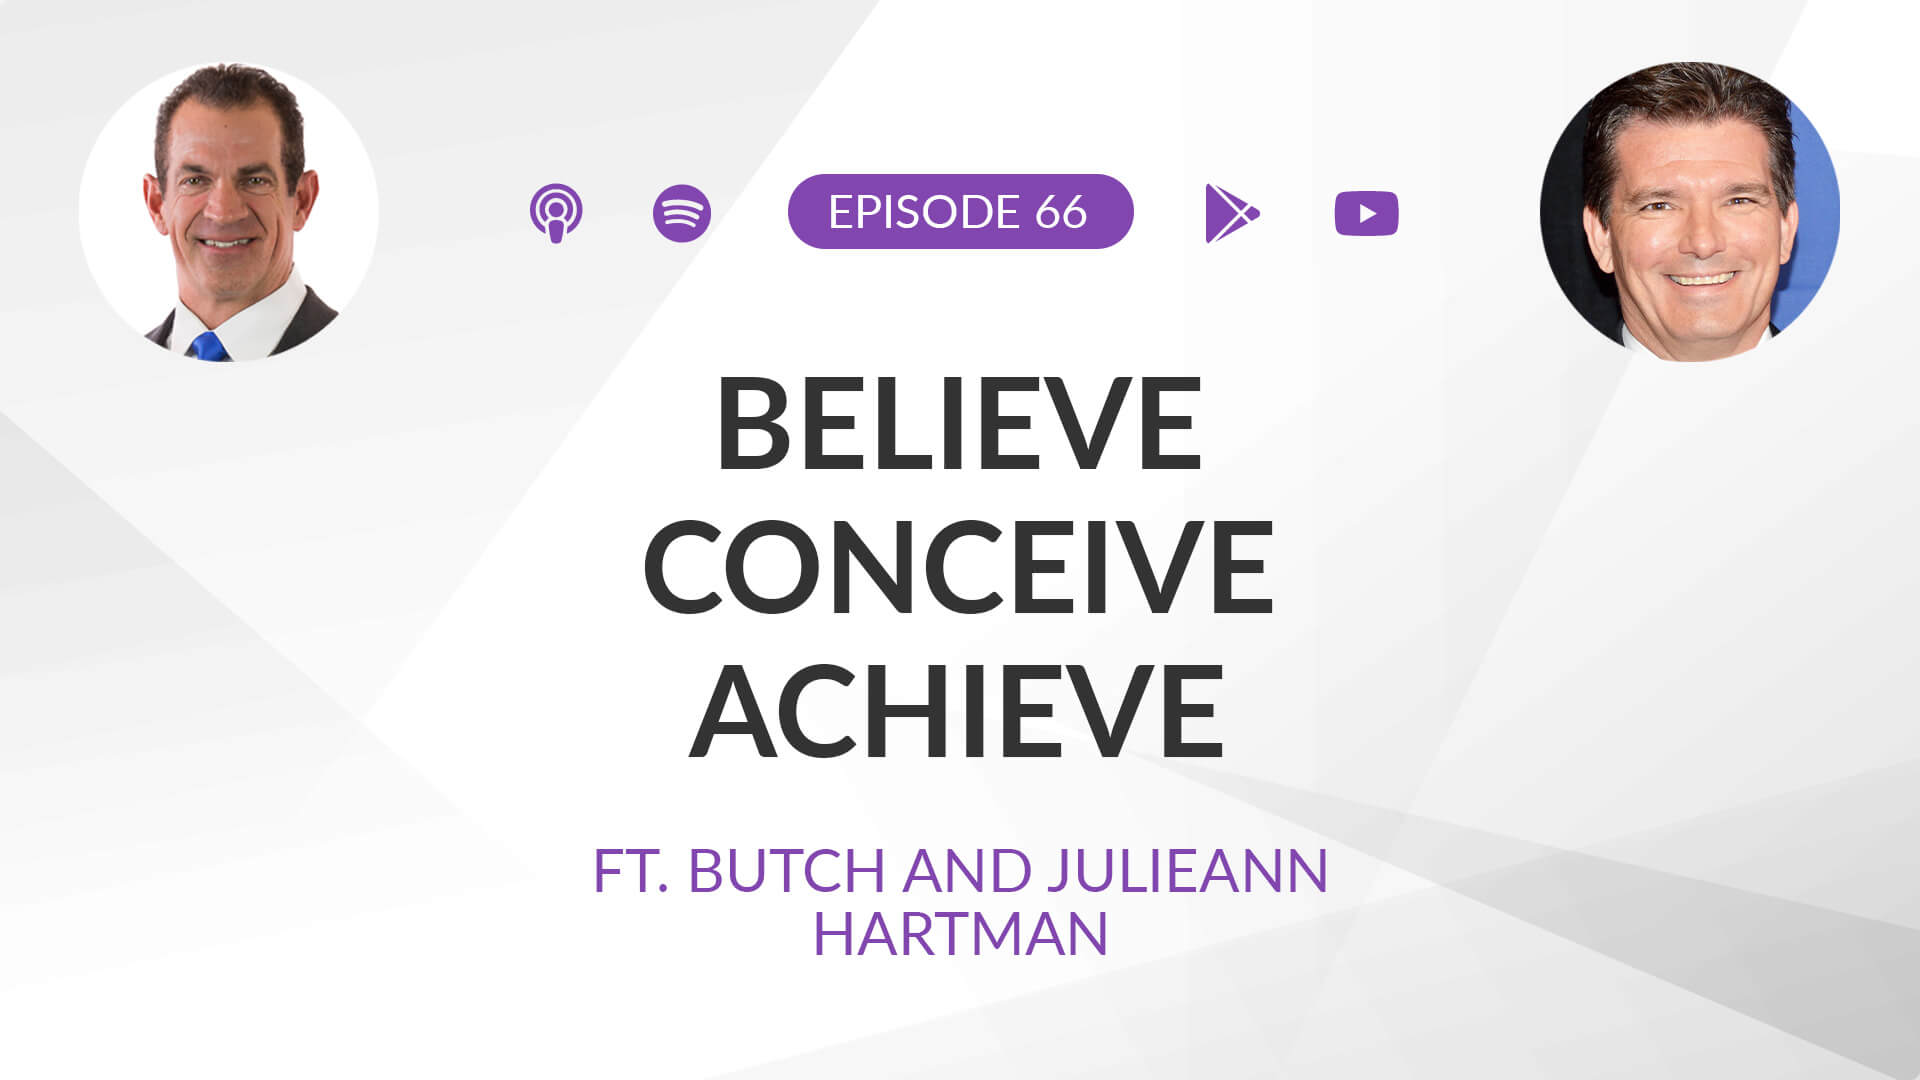 Ep 66: Believe Conceive Achieve ft. Butch and Julieann Hartman